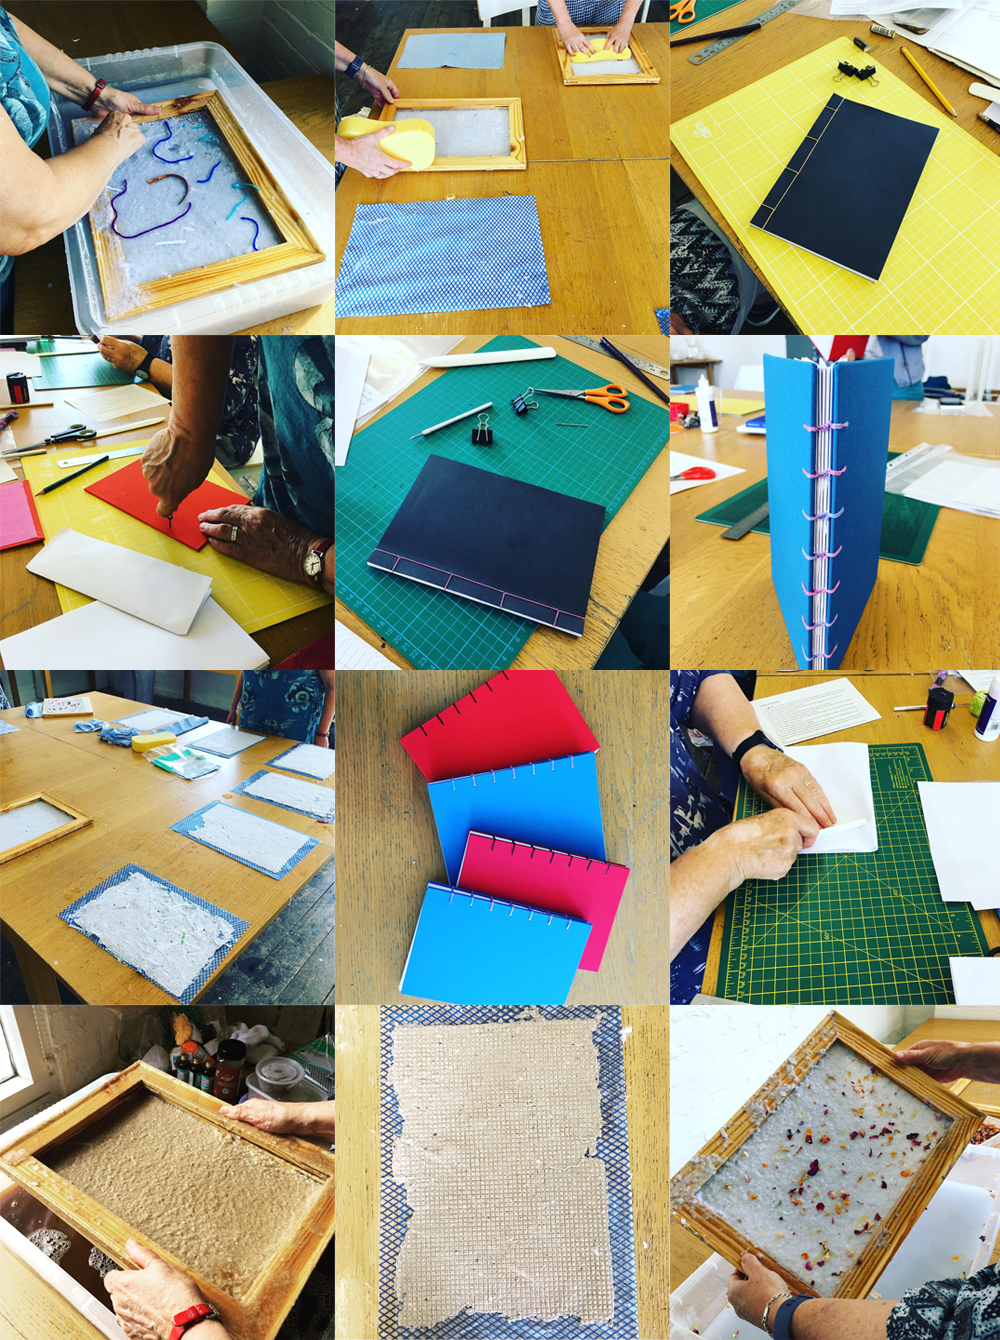 Bookbinding workshop at The Steel Rooms, Brigg